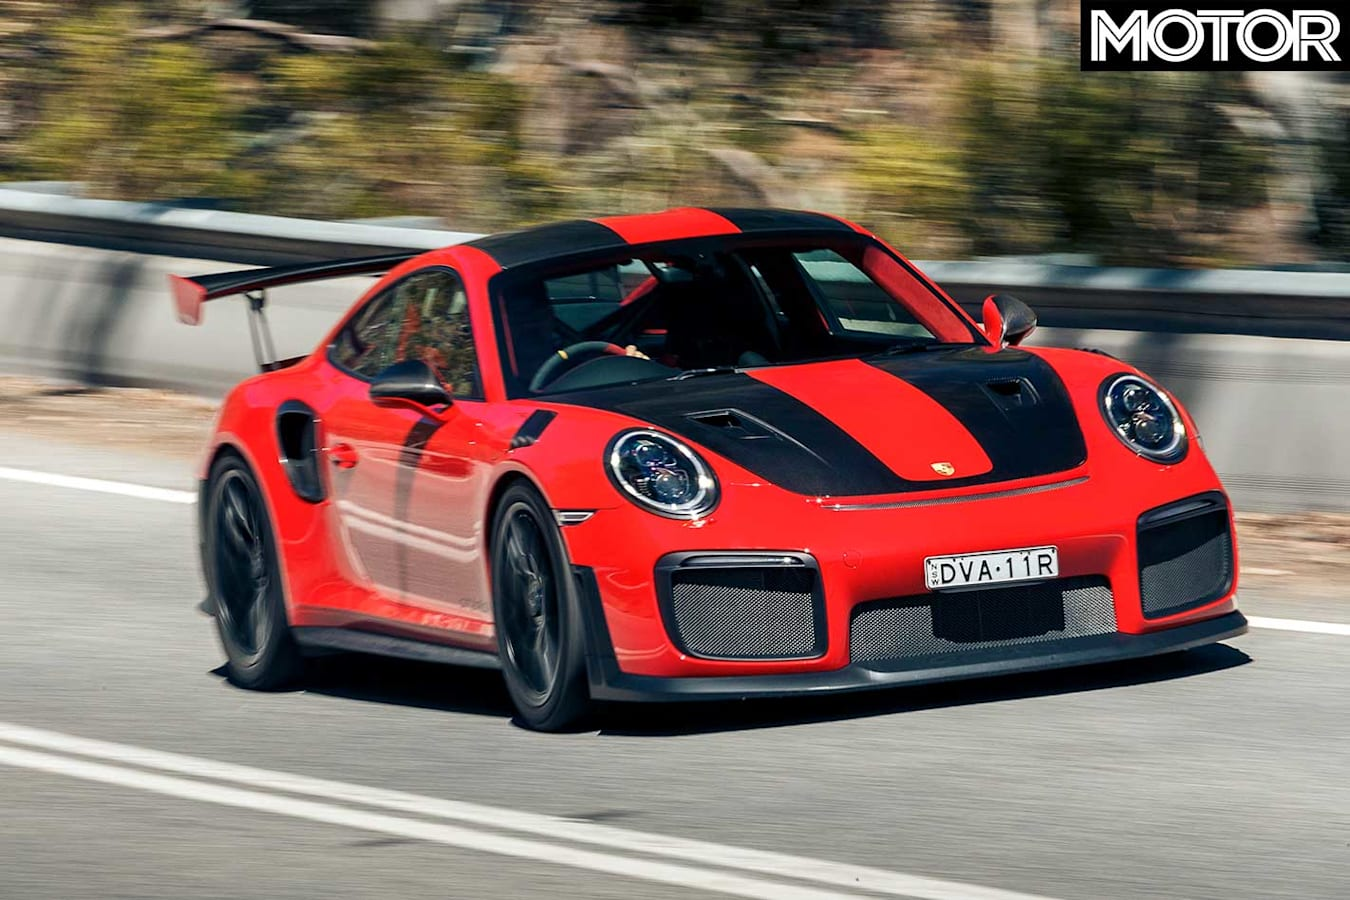 Performance Car Of The Year 2019 Porsche 911 GT 2 RS Front Jpg